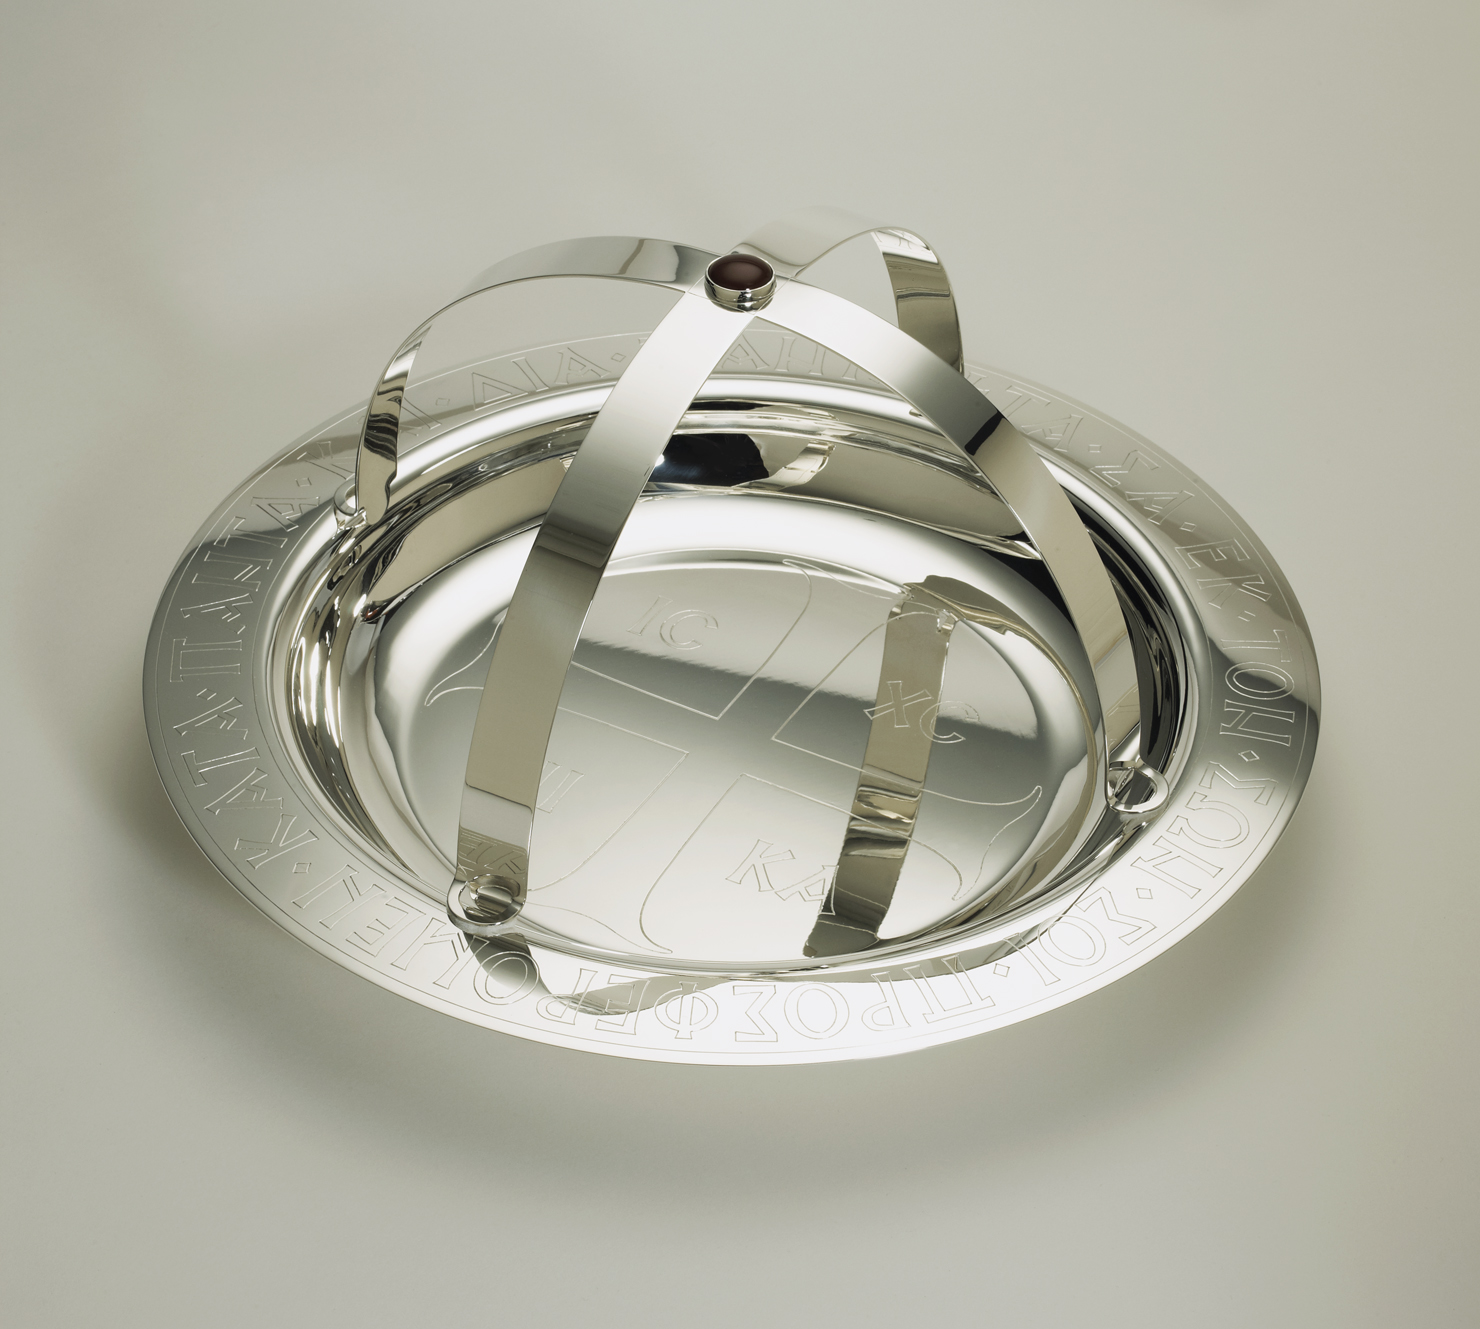 Diskos and Asterisk designed by Andrew Gould and crafted by Liza Nechamkin Glasser